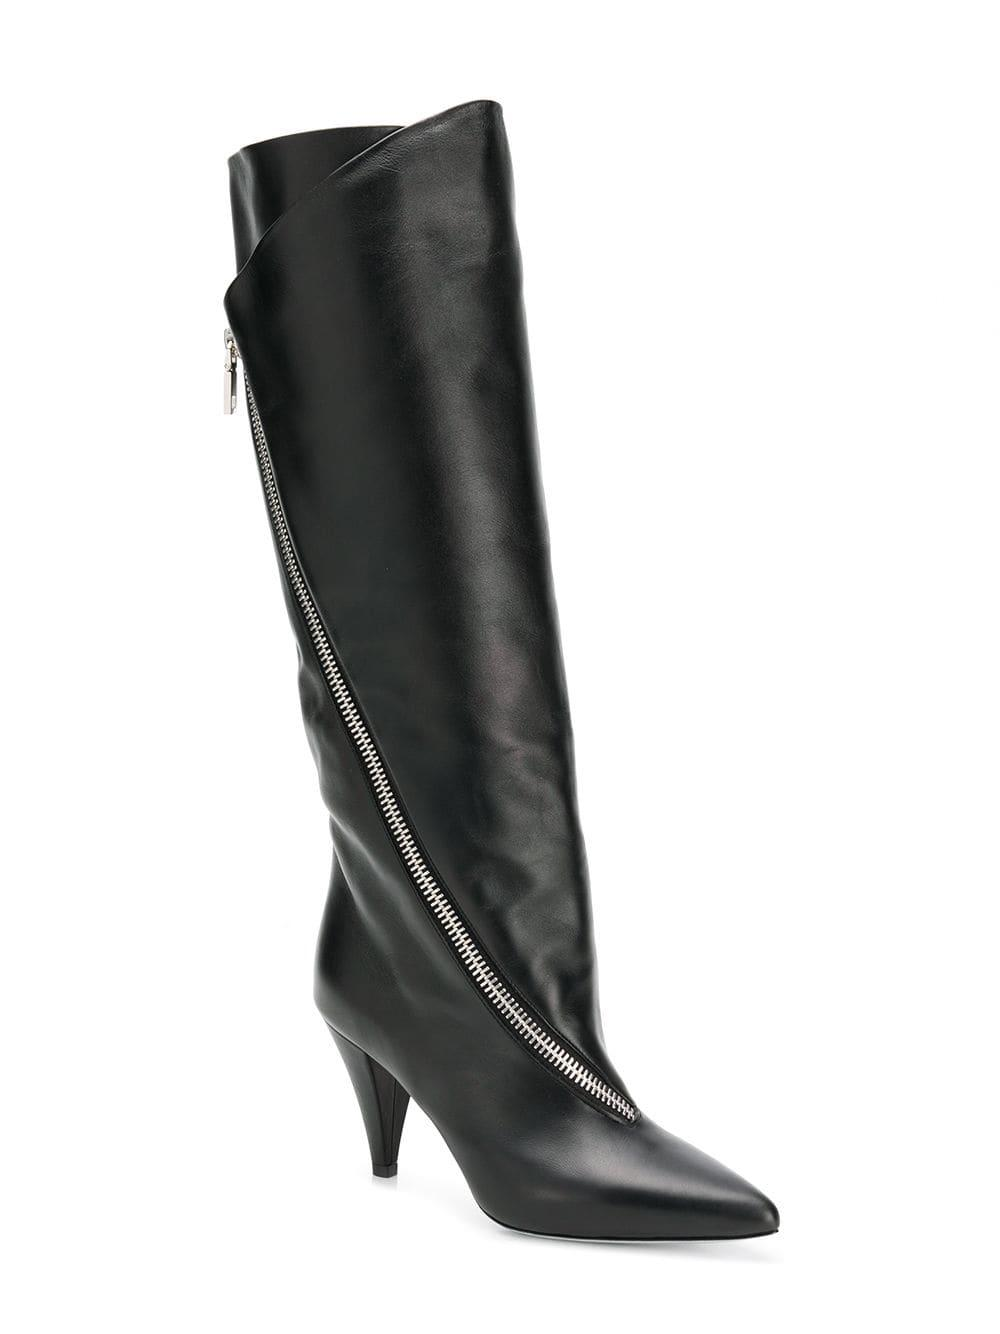 329c7e1ddfe3 Lyst - Givenchy Police High Boots in Black